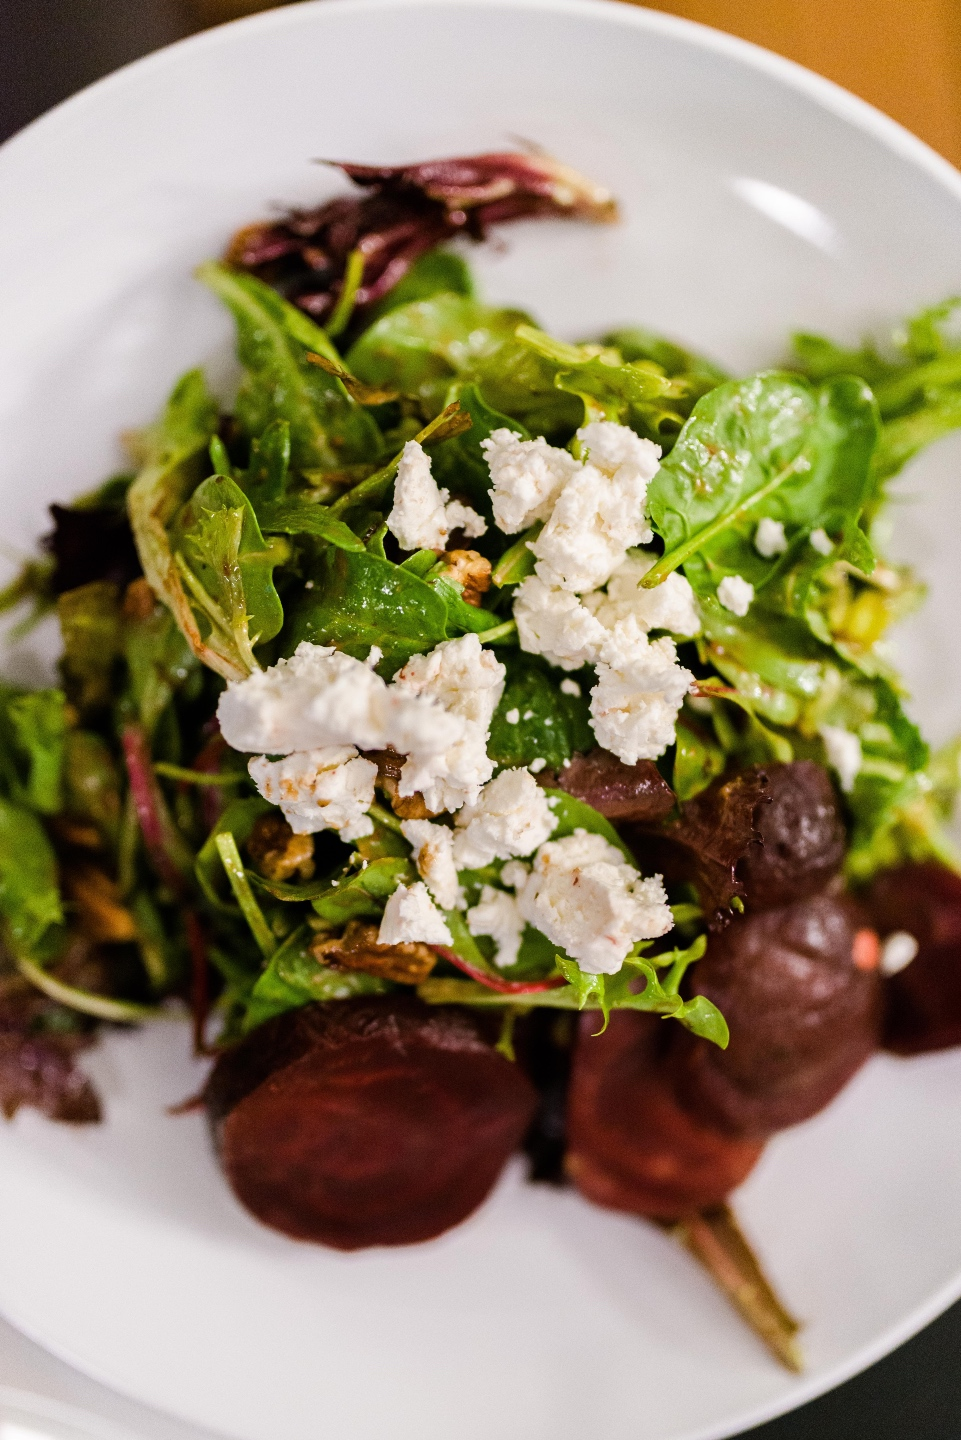 Places to Stay: The Colonial Inn in Hillsborough NC - I'm Fixin' To - @imfixintoblog |The Colonial Inn Hillsborough NC by popular NC travel blog, I'm Fixin' To: image of a salad with beets and goat cheese.